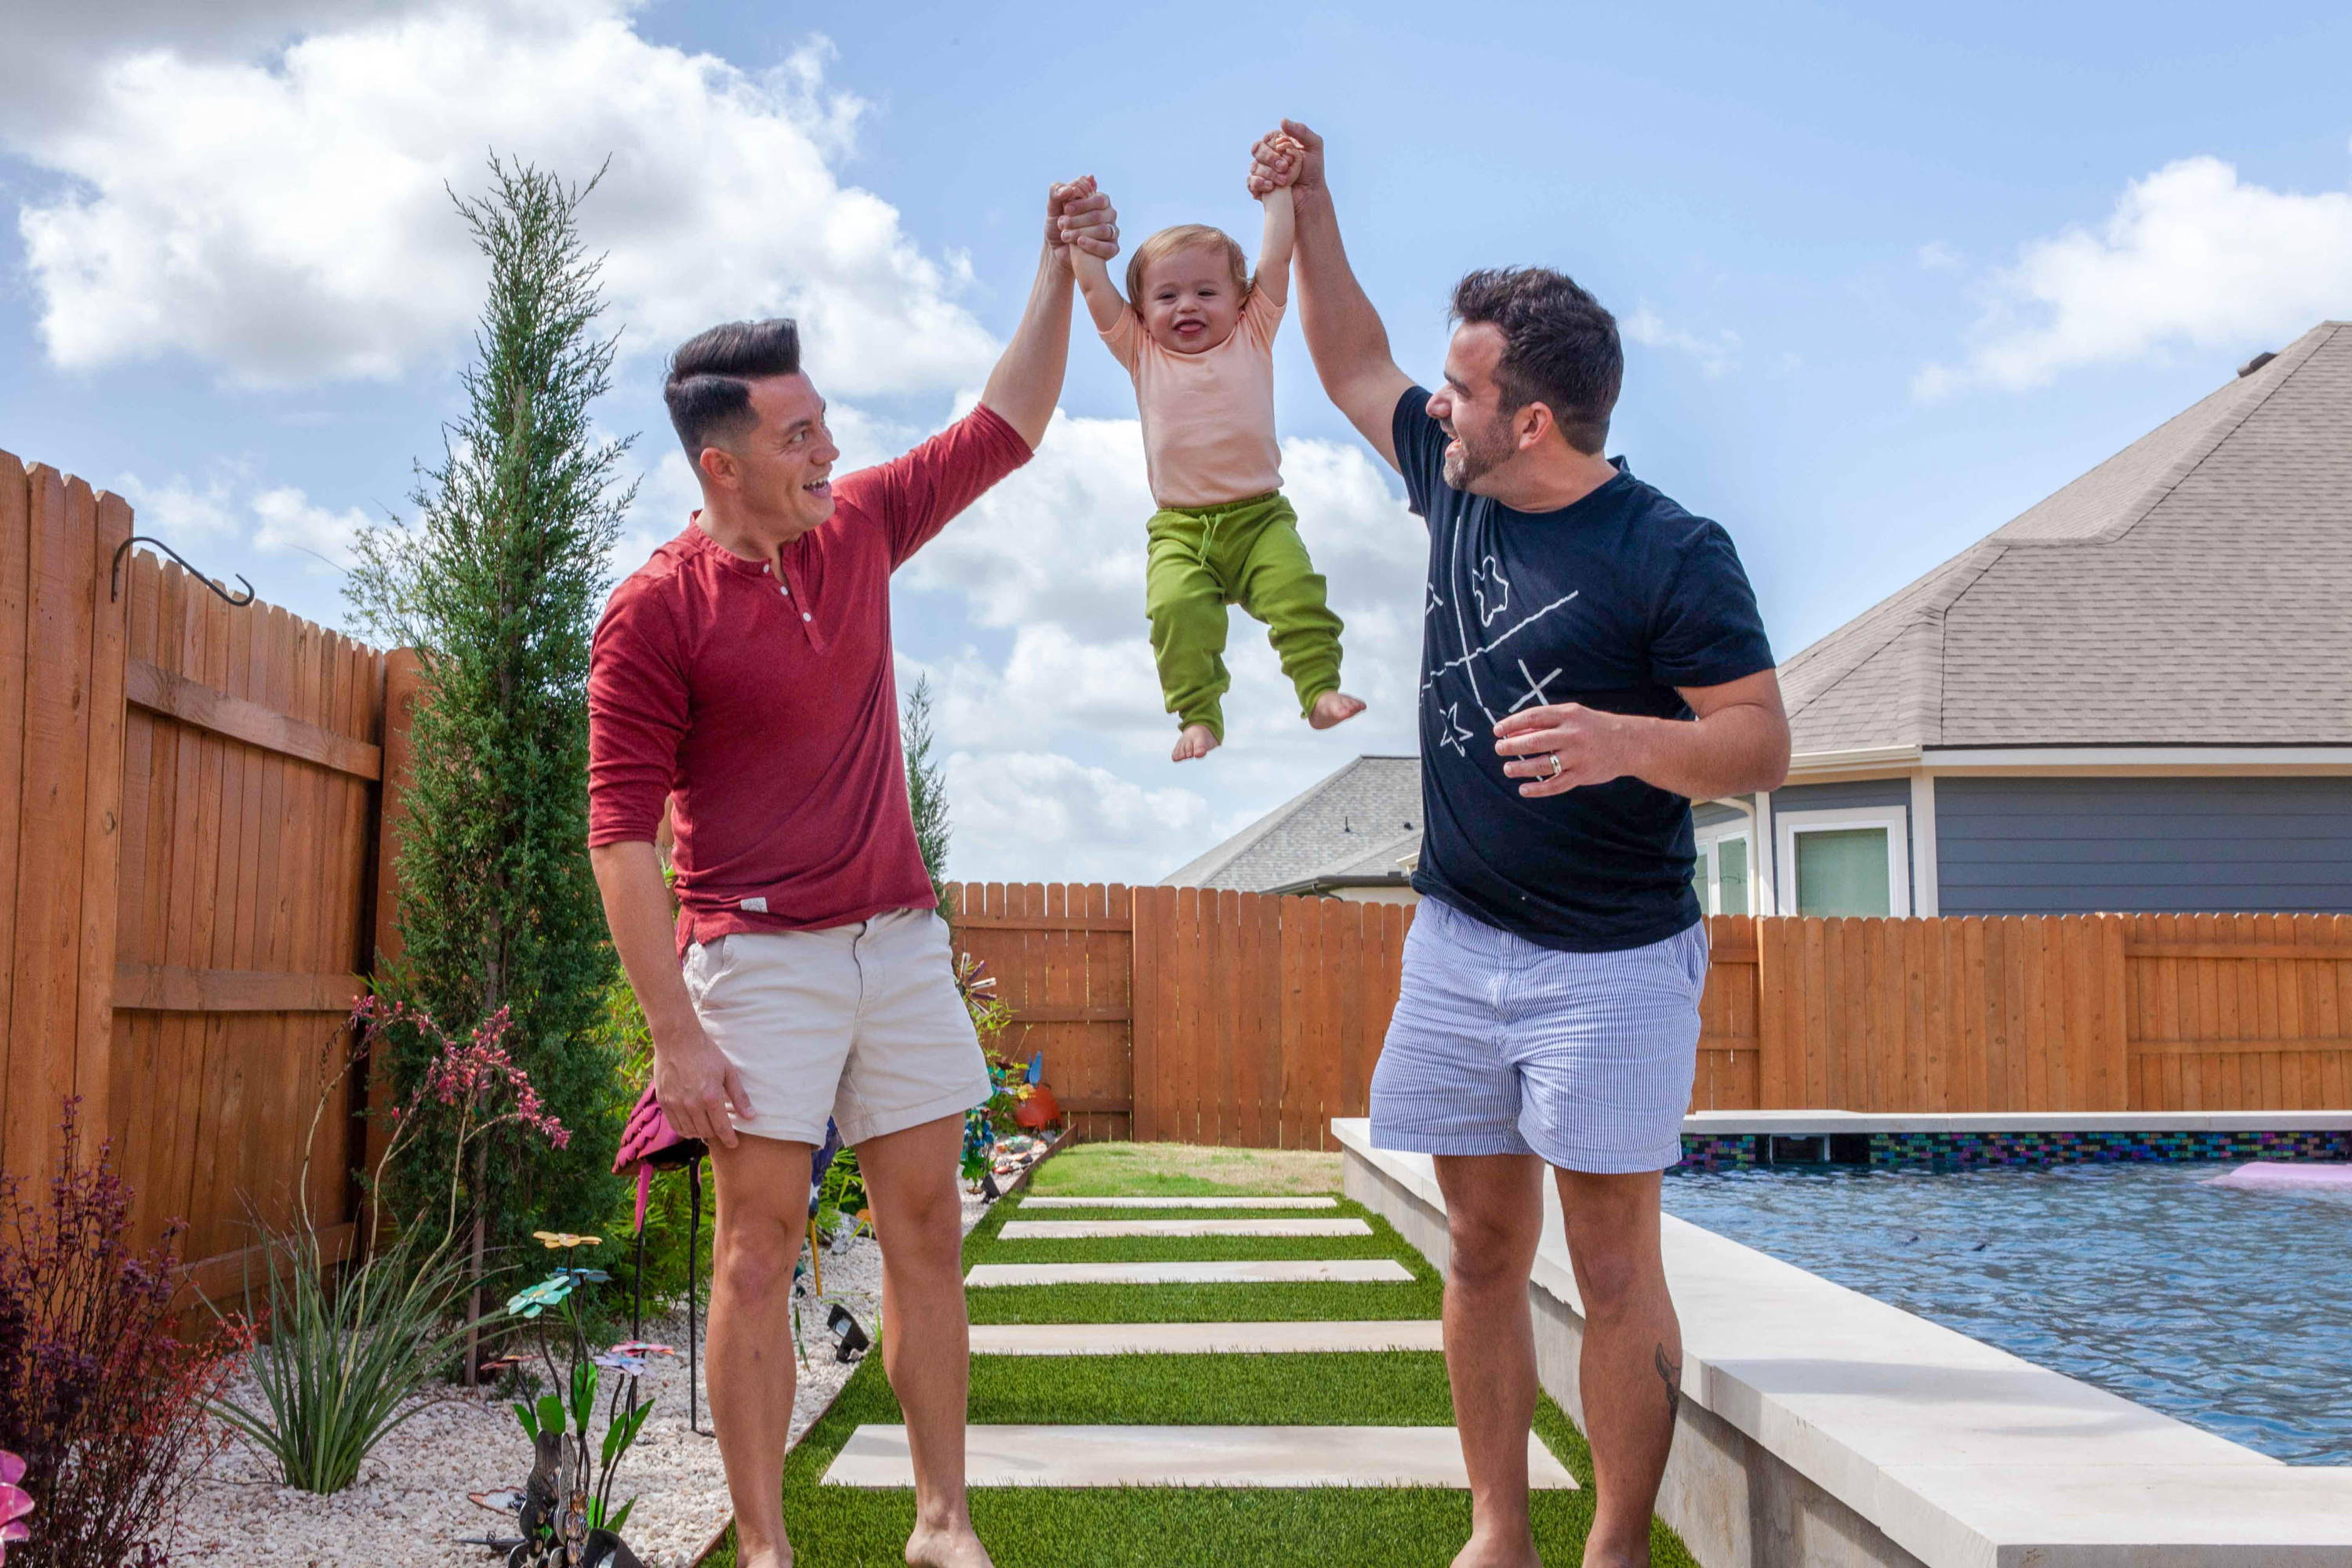 Image of Chris and Will DeGiglio-Wright  in outdoor/backyard area lifting son Riley in the air between them.